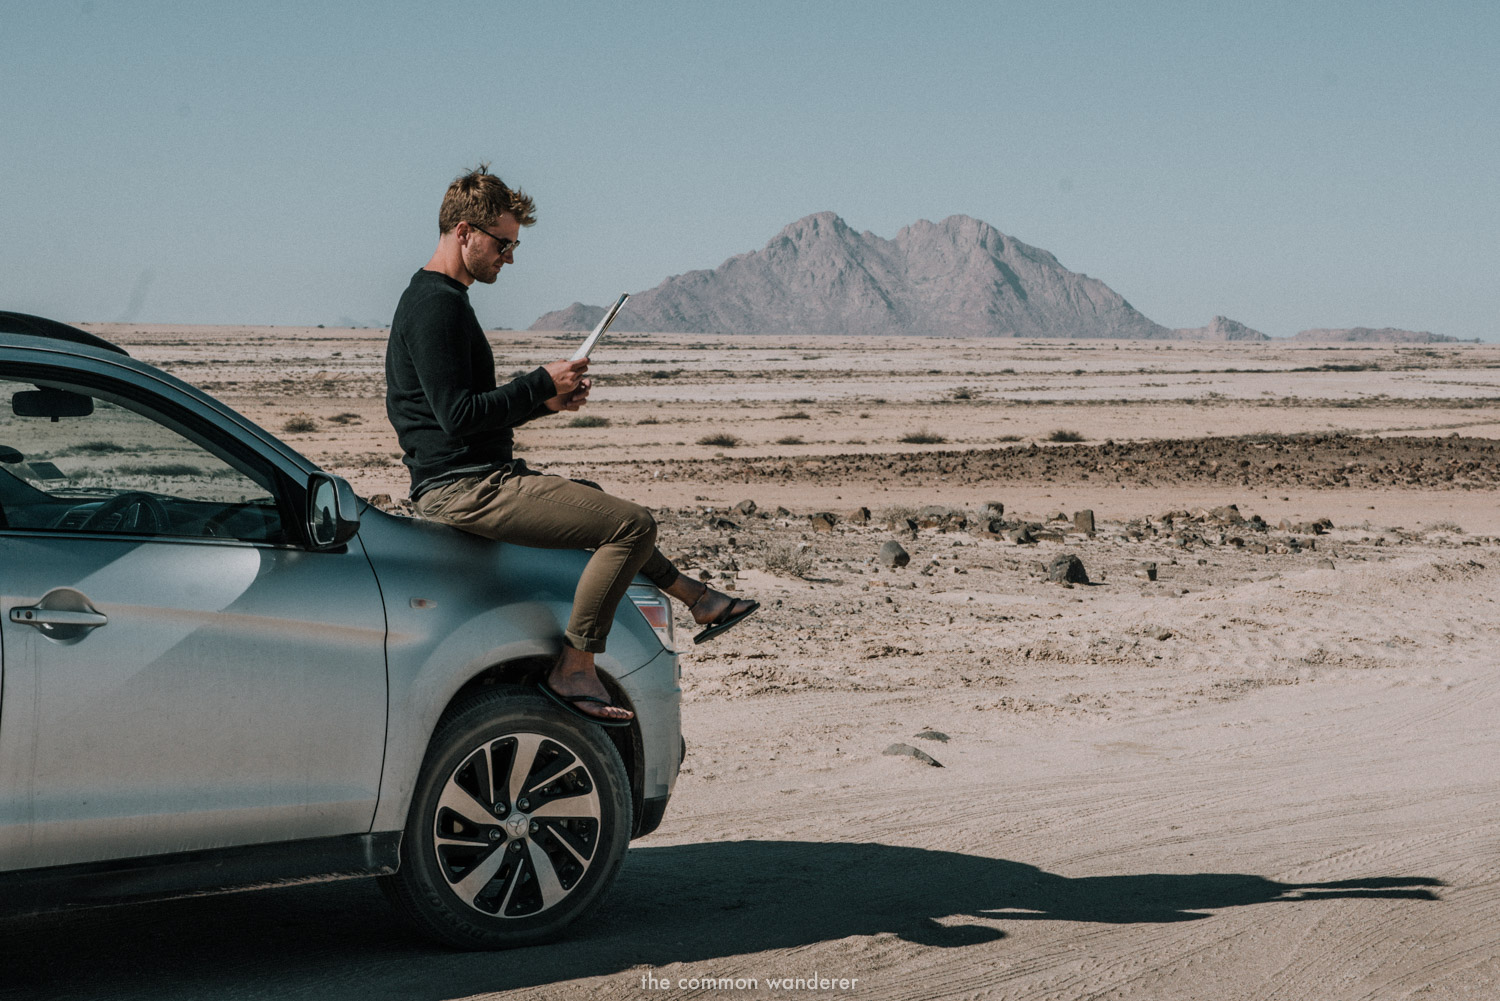 A man reads a map with Spitzkoppe mountain range in the background, Namibia road trip itinerary